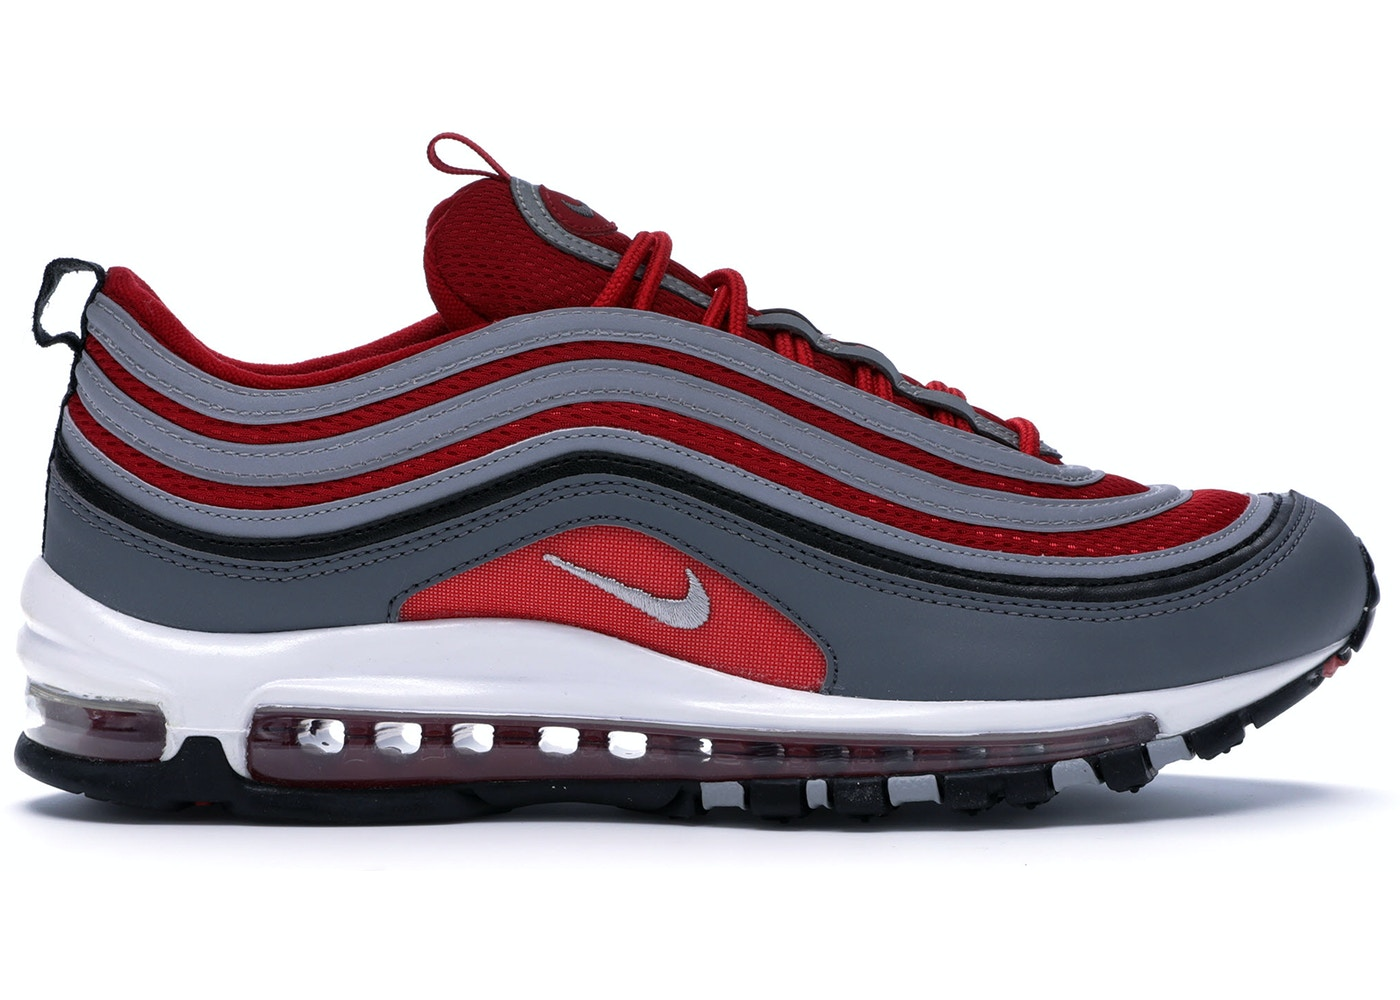 Nike Air Max 97 Dark Grey Gym Red 921826 007